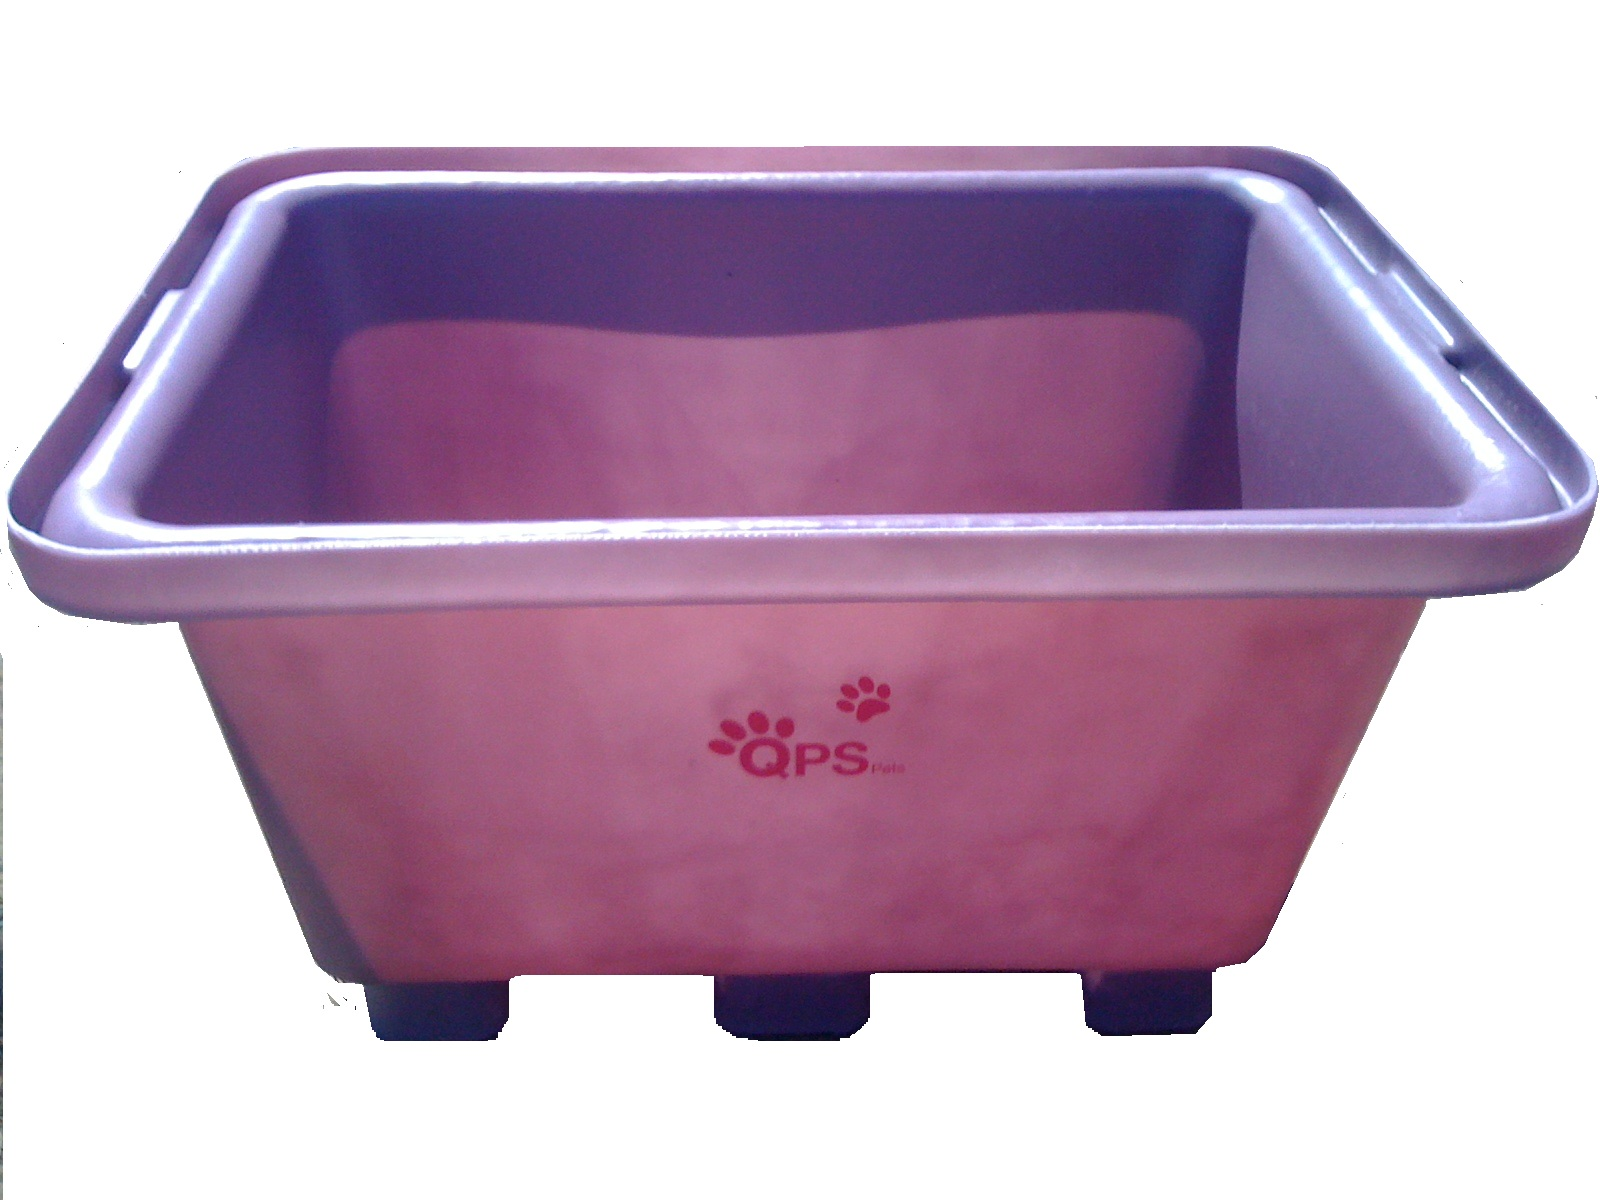 250l Water Trough Purple Quality Pet Supplies Dog Bath Grooming Supplies Dog Grooming Equipment